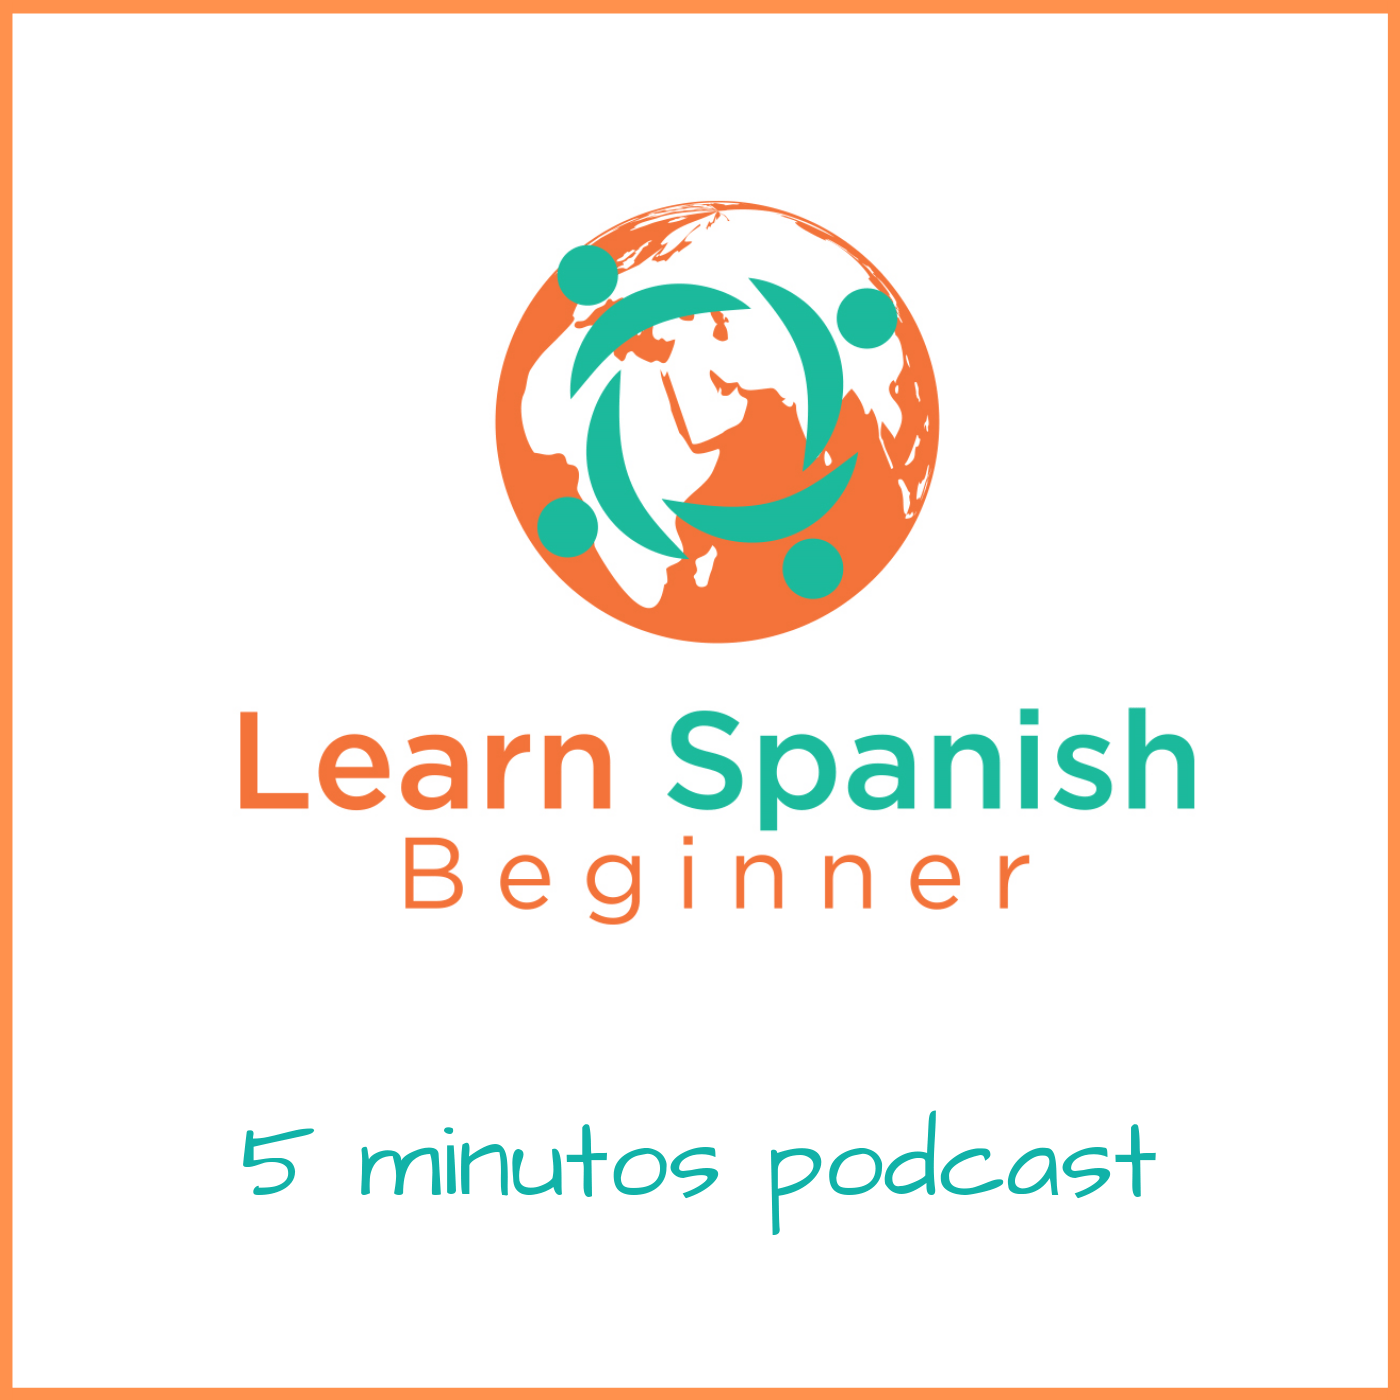 El podcast Learn Spanish Beginner (Ep. 1)